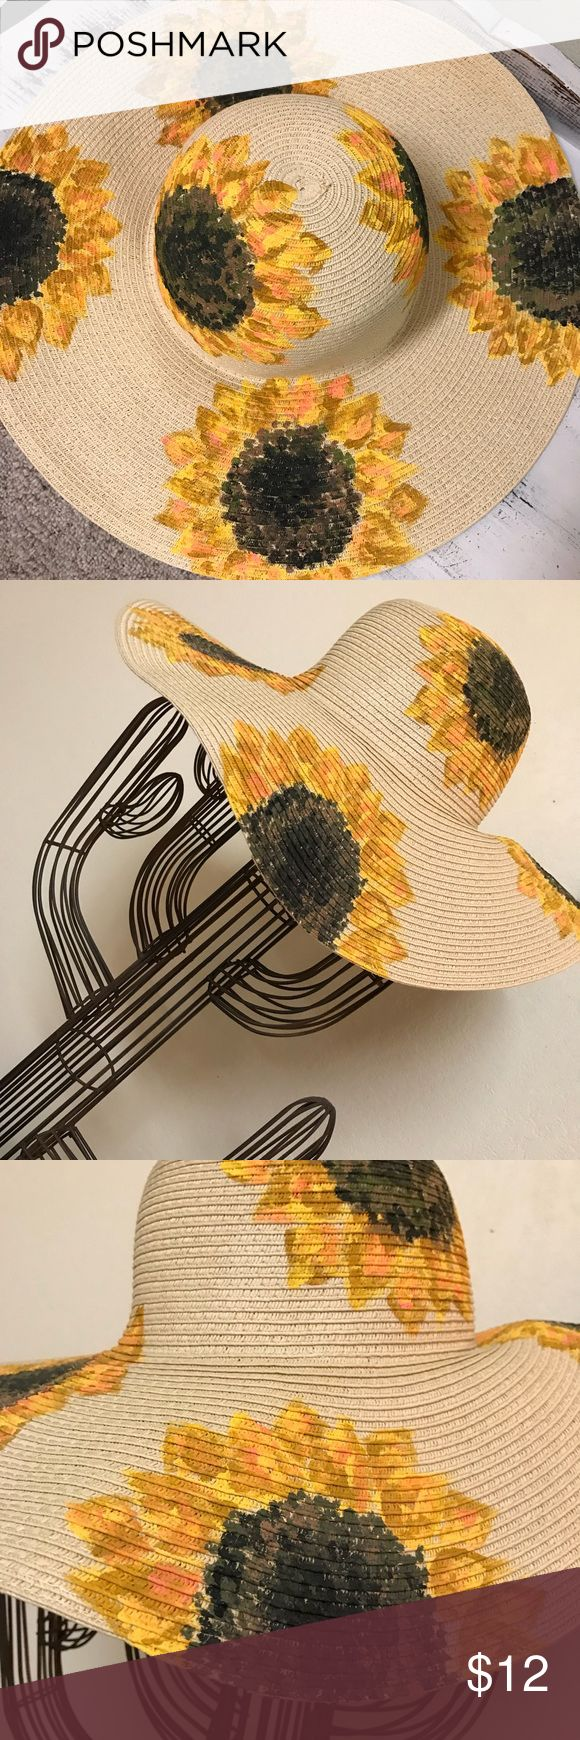 HANDPAINTED YELLOW SUNFLOWER SUNHAT Originally purchased from Forever 21 - NWT HANDPAINTED sunflowers  Size S/M Forever 21 Accessories Hats